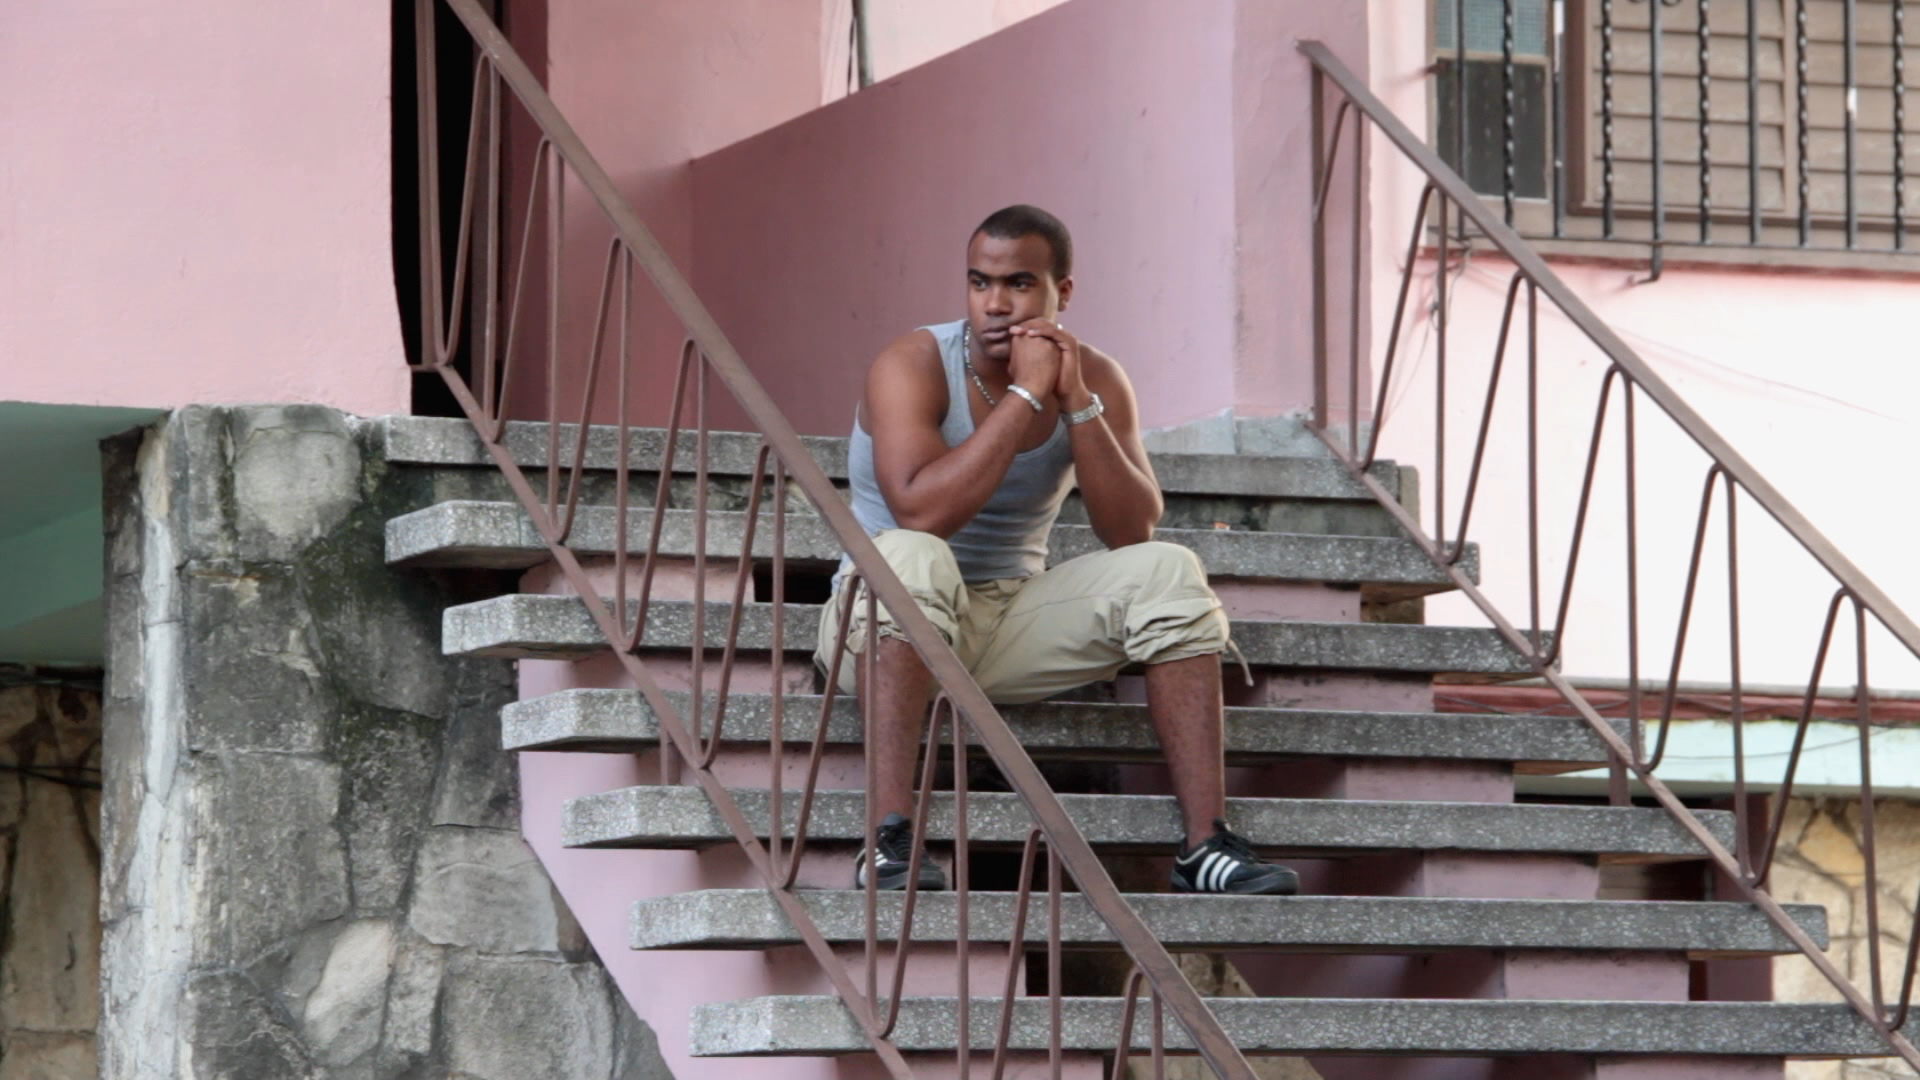 Yusniel  is one of five documentaries commissioned to Juampa by the Cuban Film Institute (ICAIC). The frequent censorship he experienced while working for this governmental institution inspired   Yunaisy  .